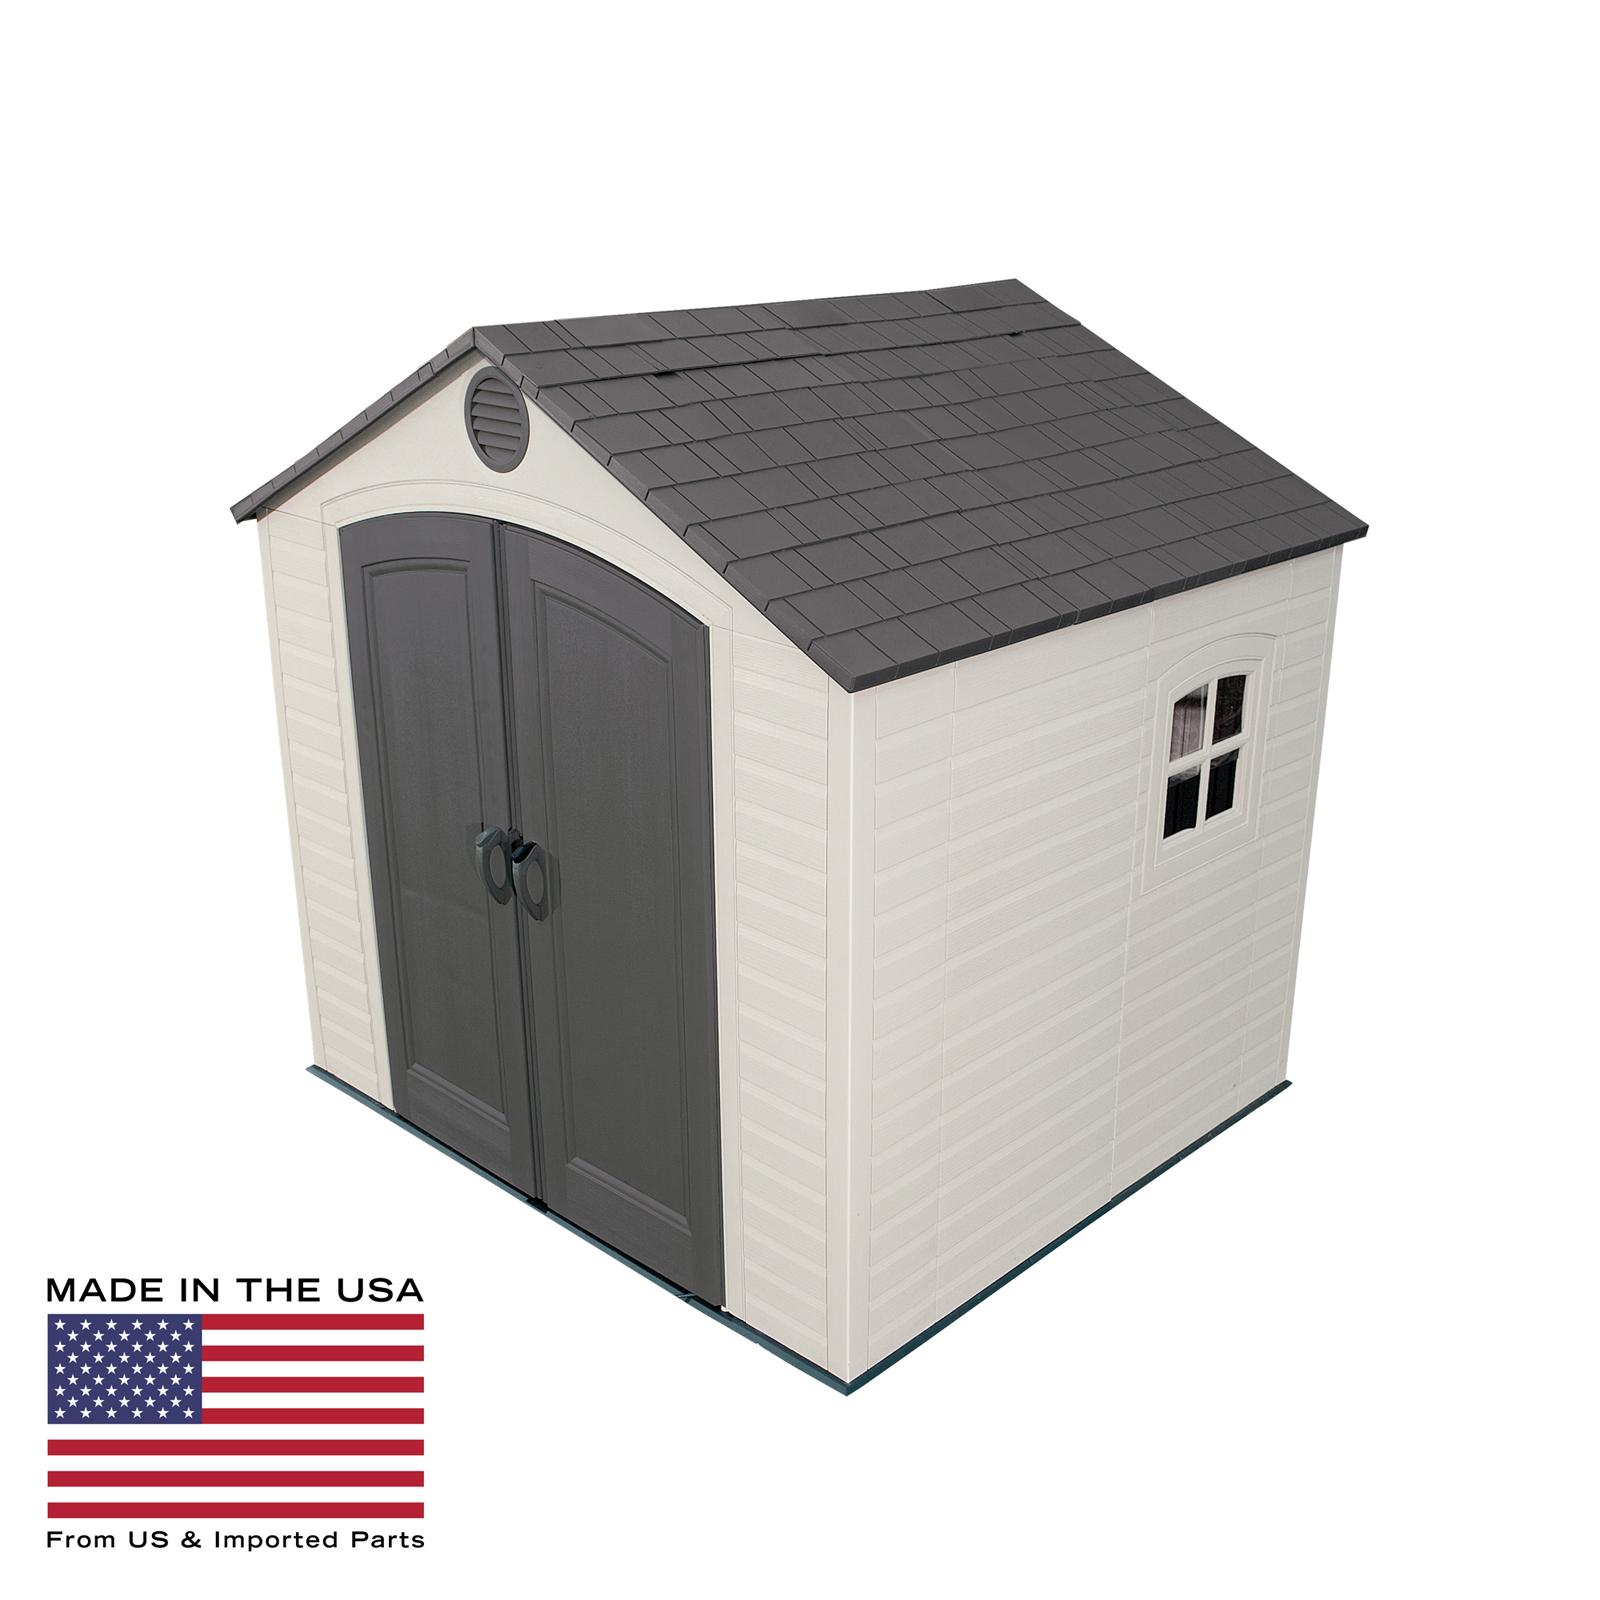 Lifetime 8 x 7.5 ft. Outdoor Storage Shed - 6411